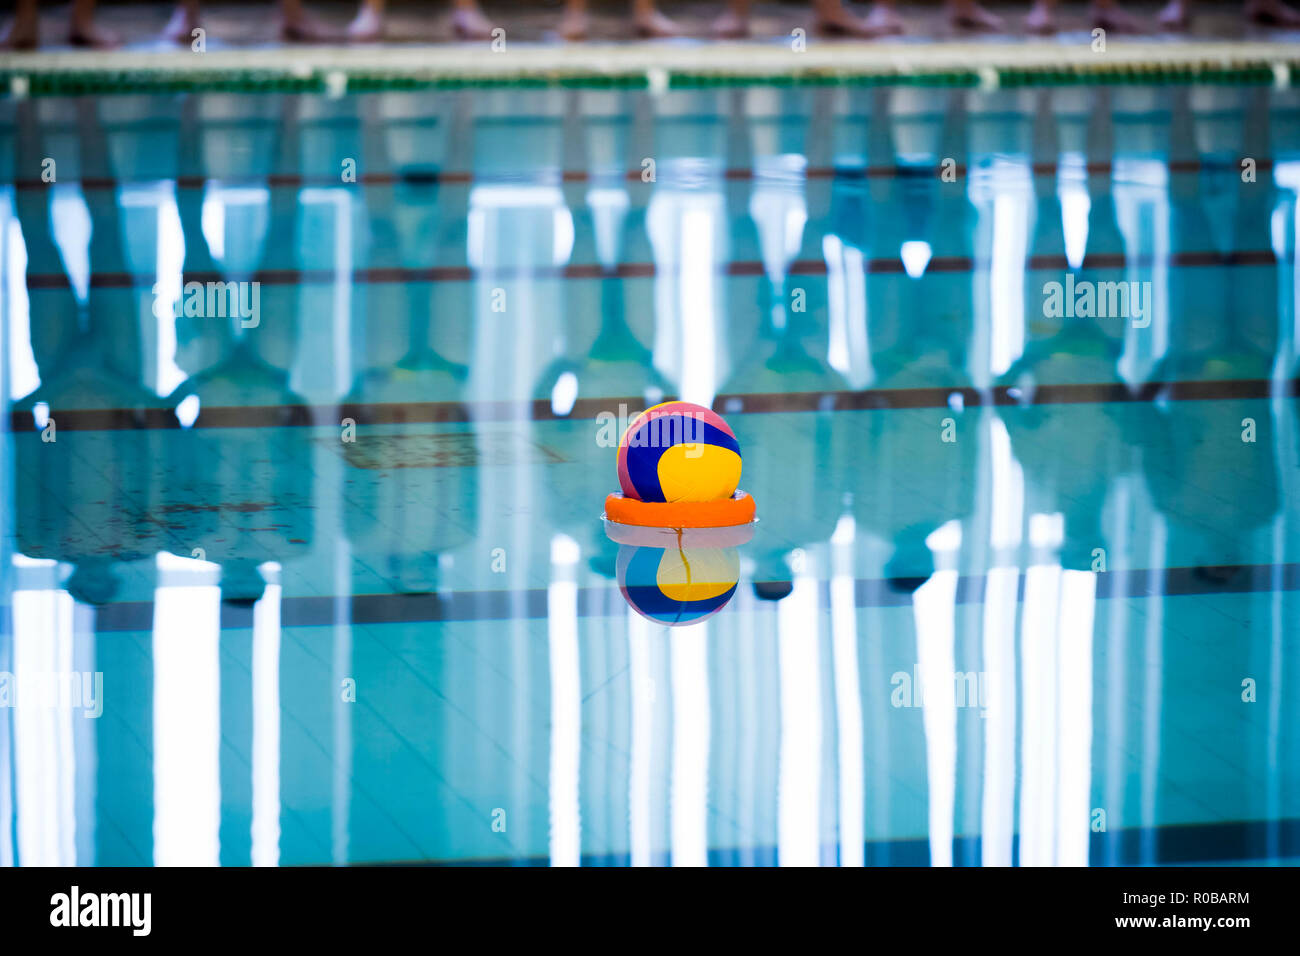 Water polo is a team water sport - Stock Image